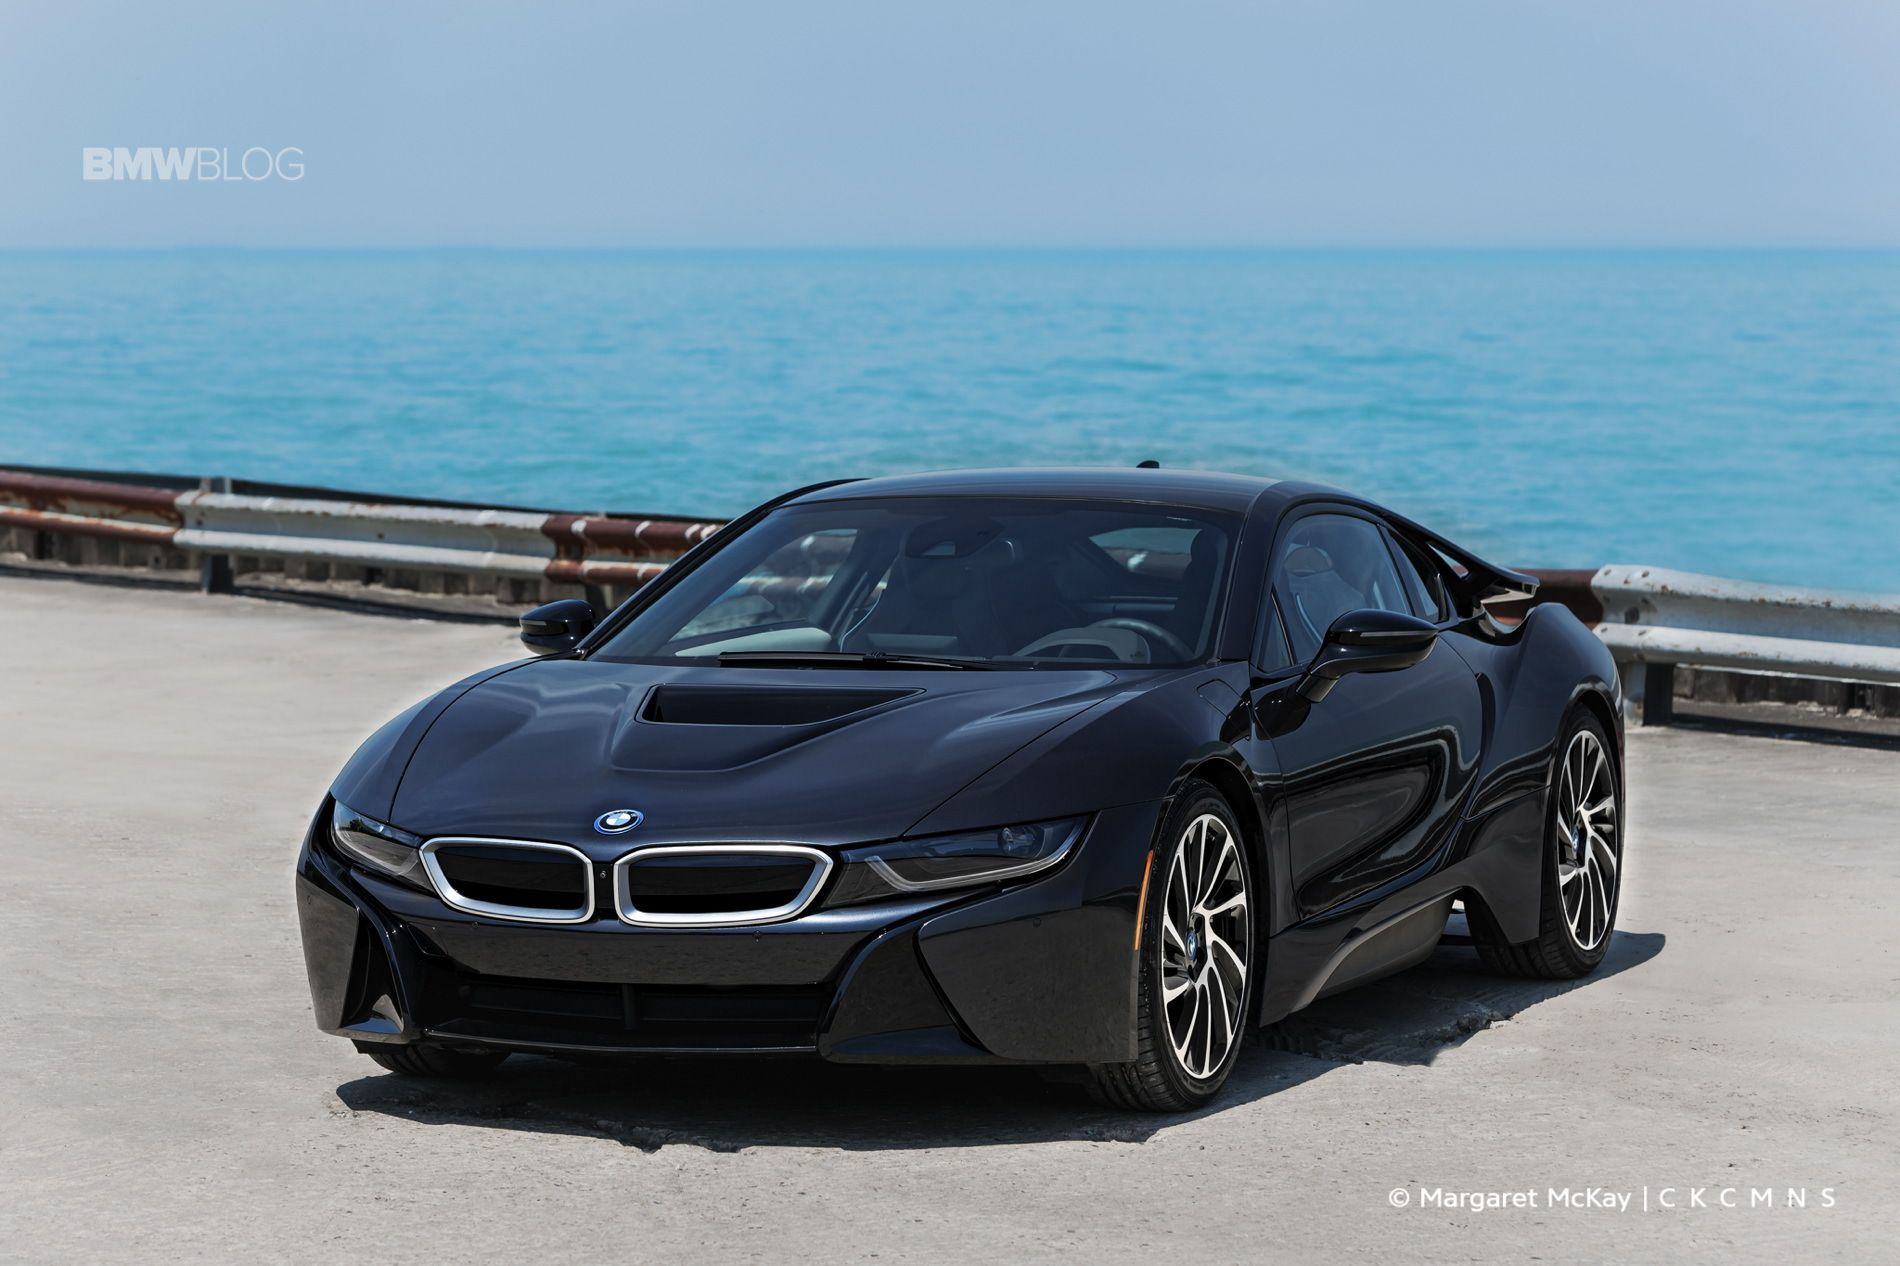 BMW I8: Jaw-dropping Style And Green Performance, But Why? | Bmw I8,  Cars